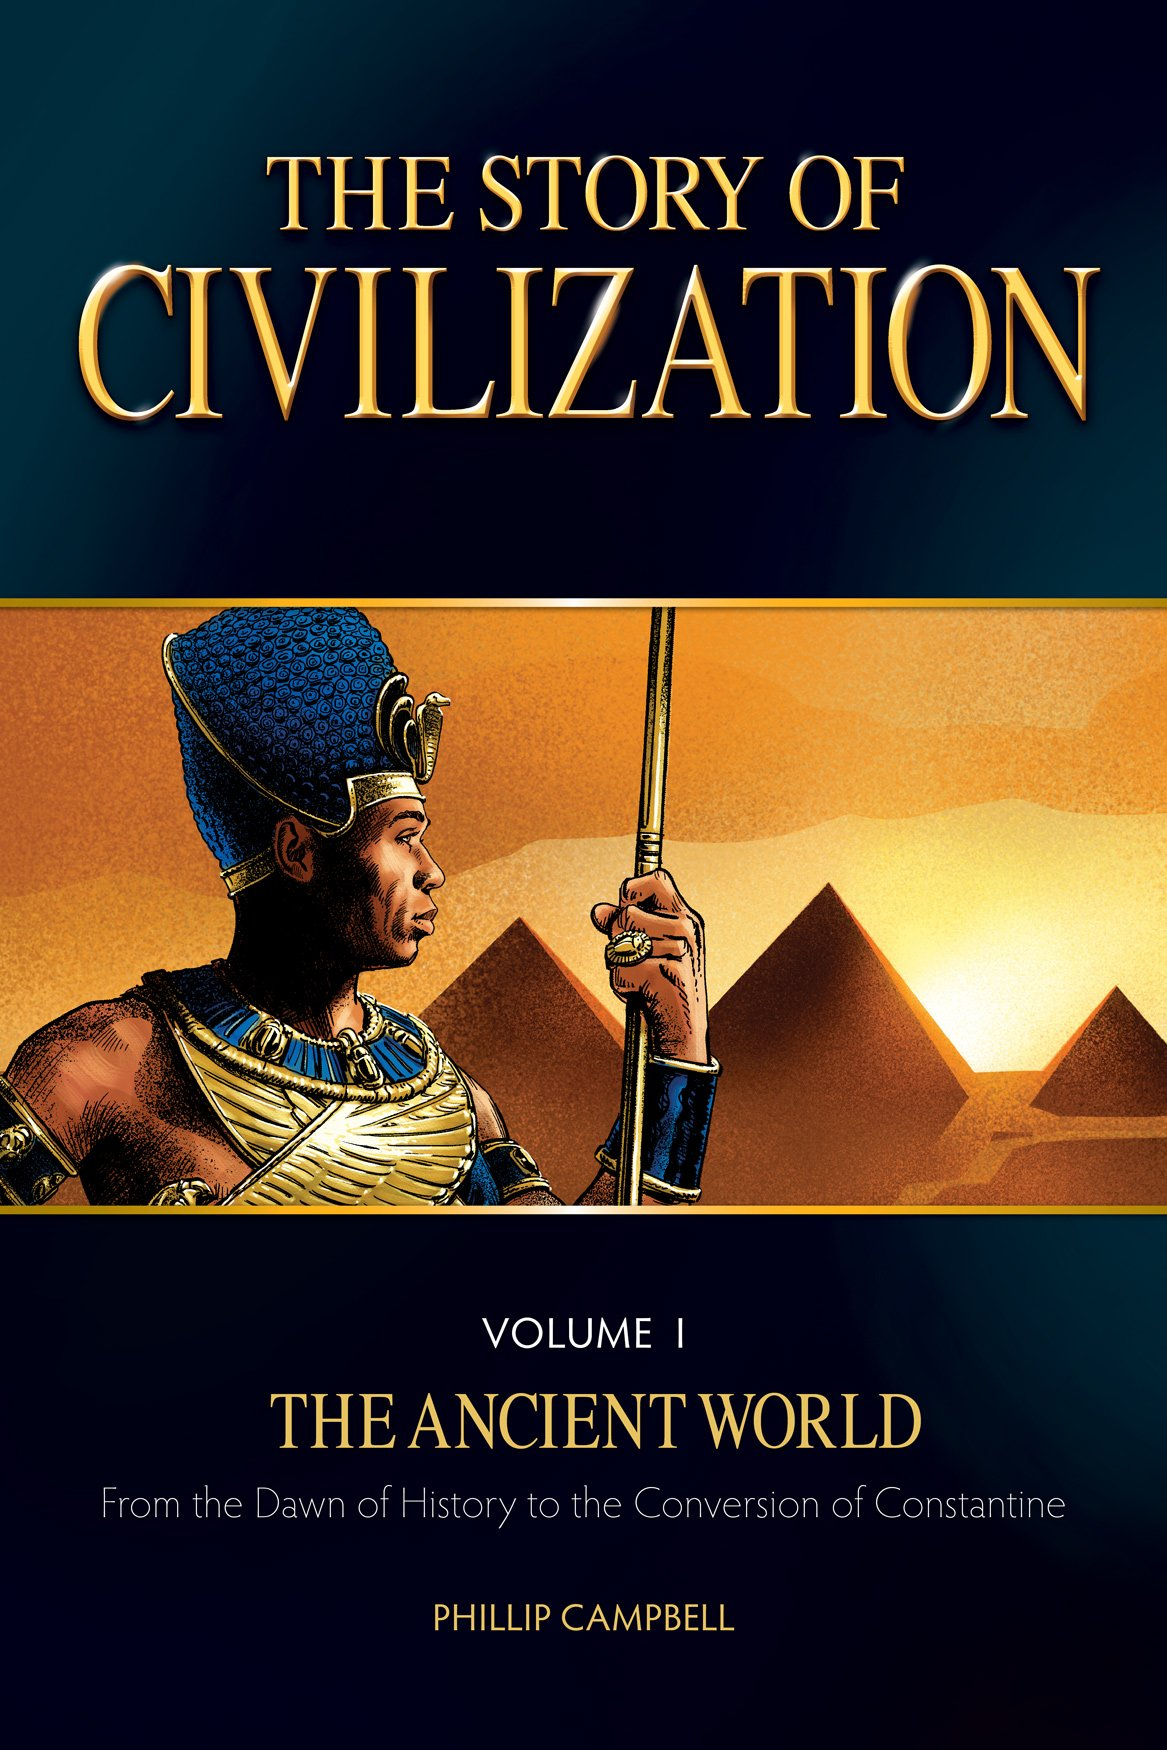 The Story of Civilization: VOLUME I - The Ancient World